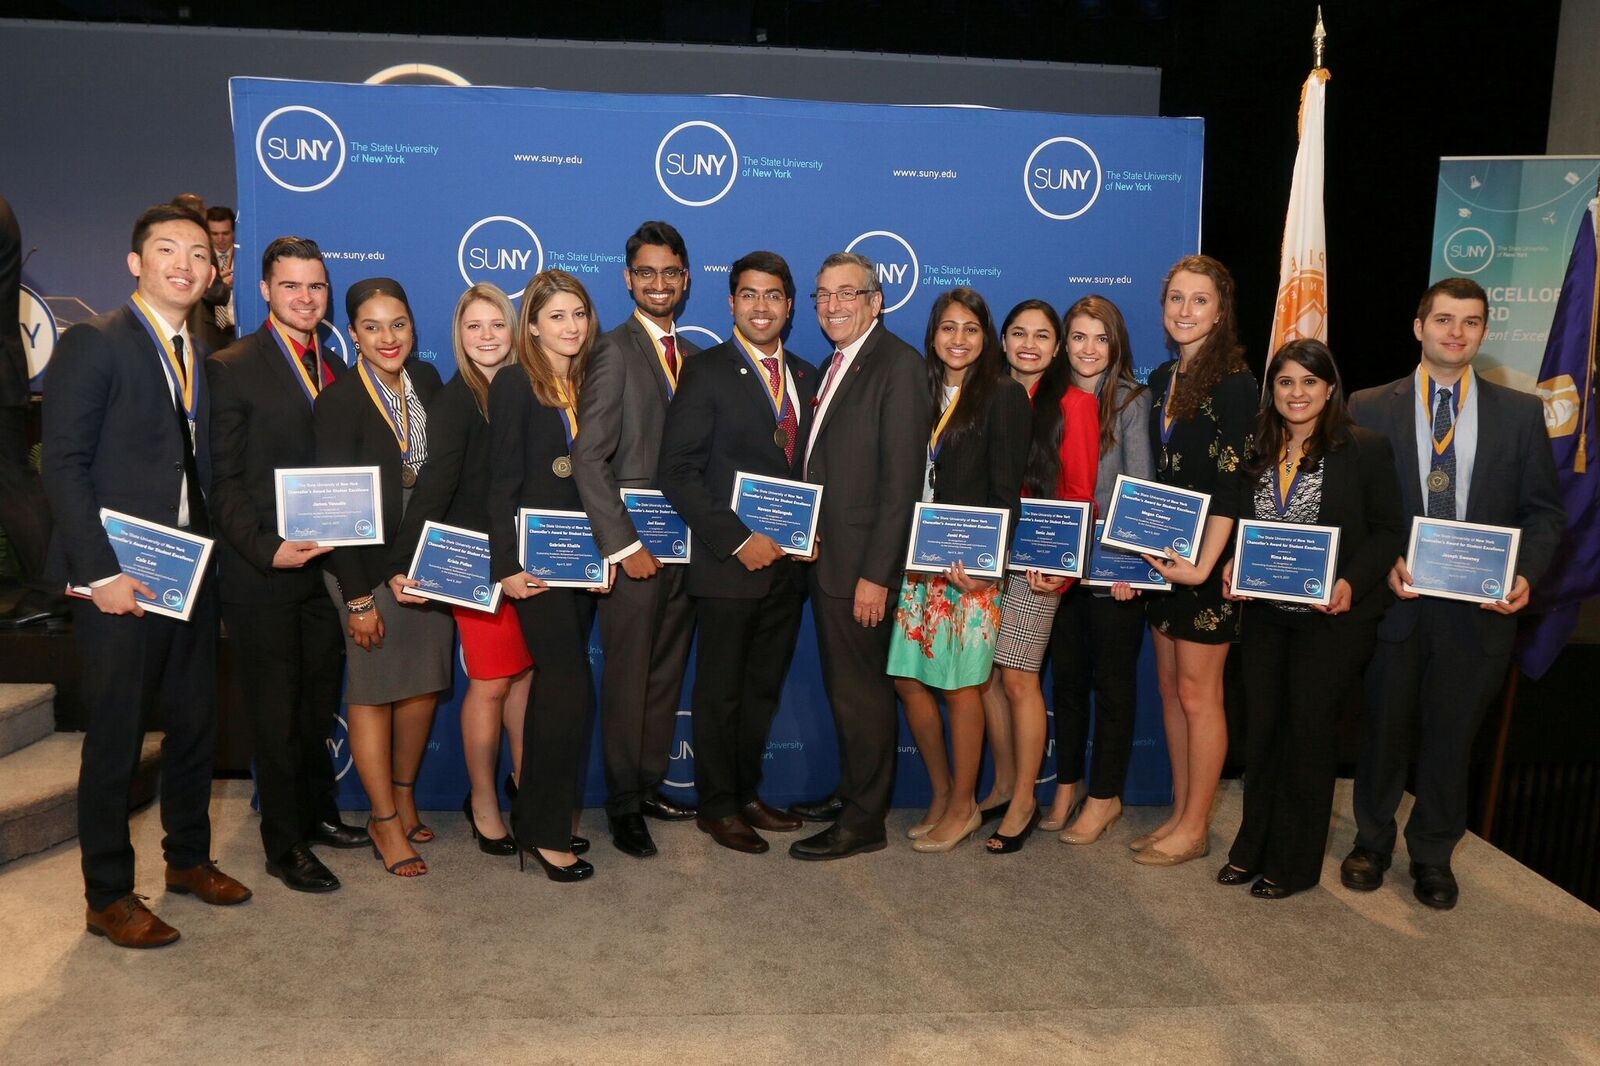 Left to right: Cole Lee; James Vassallo; Joselin Vargas; Krista Pullen; Gabrielle Khalife; Joel Kovoor; Naveen Mallangada; Charles Robbins, Vice Provost for Undergraduate Education and Dean of the Undergraduate Colleges; Janki Patel; Sonia Joshi; Taylor Brant; Megan Cooney; Rima Madan and Joseph Sweeney (not pictured: Bella Gurevich and Ioana Soaita)